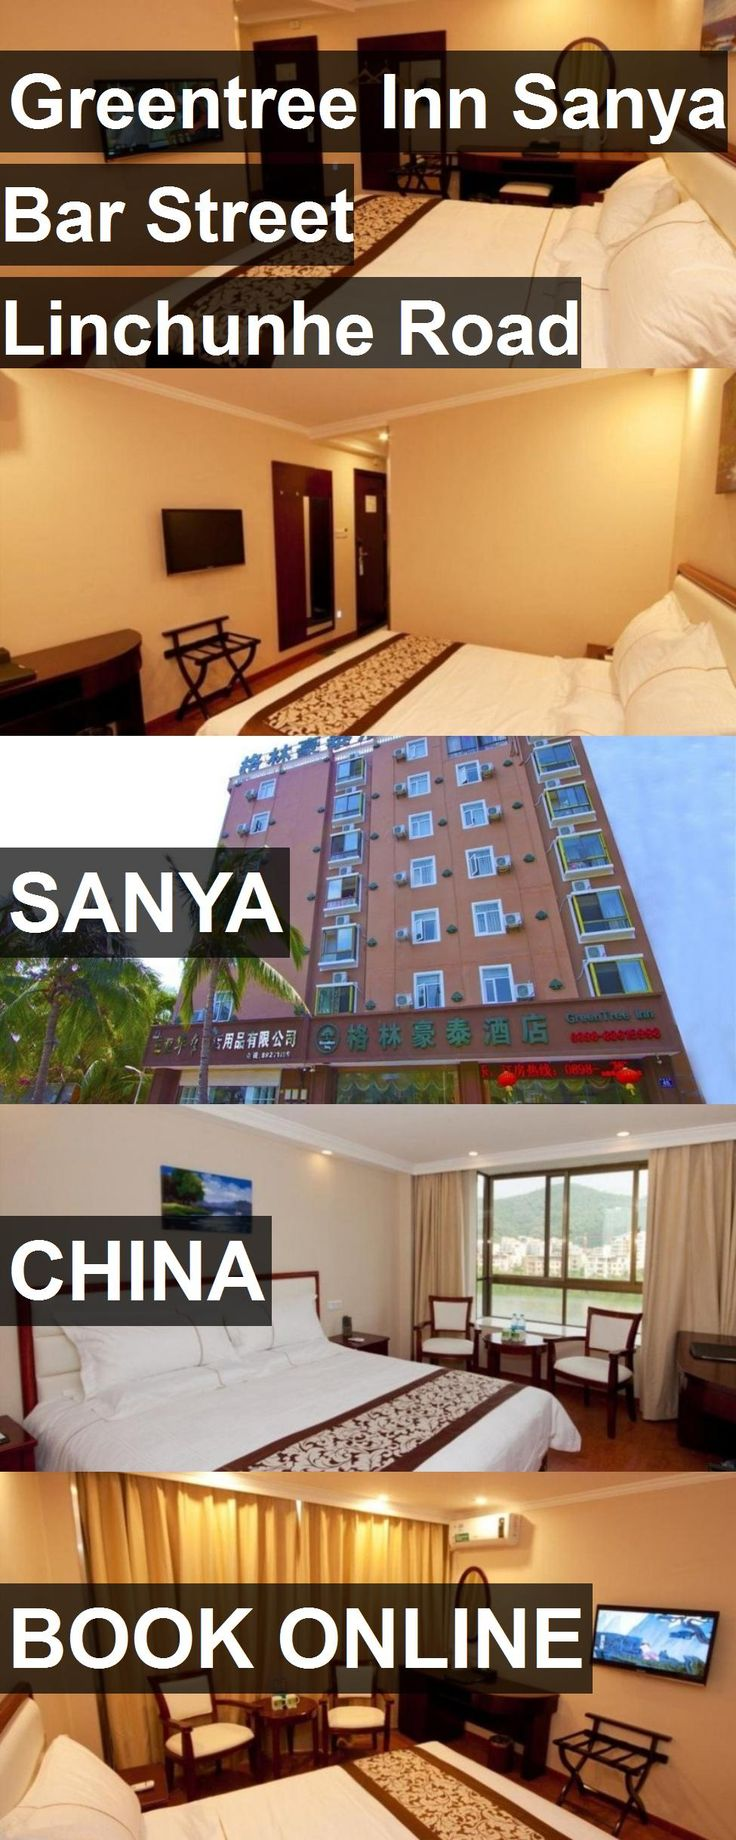 Greentree Inn Sanya Bar Street Linchunhe Road Business Hotel in Sanya, China. For more information, photos, reviews and best prices please follow the link. #China #Sanya #travel #vacation #hotel